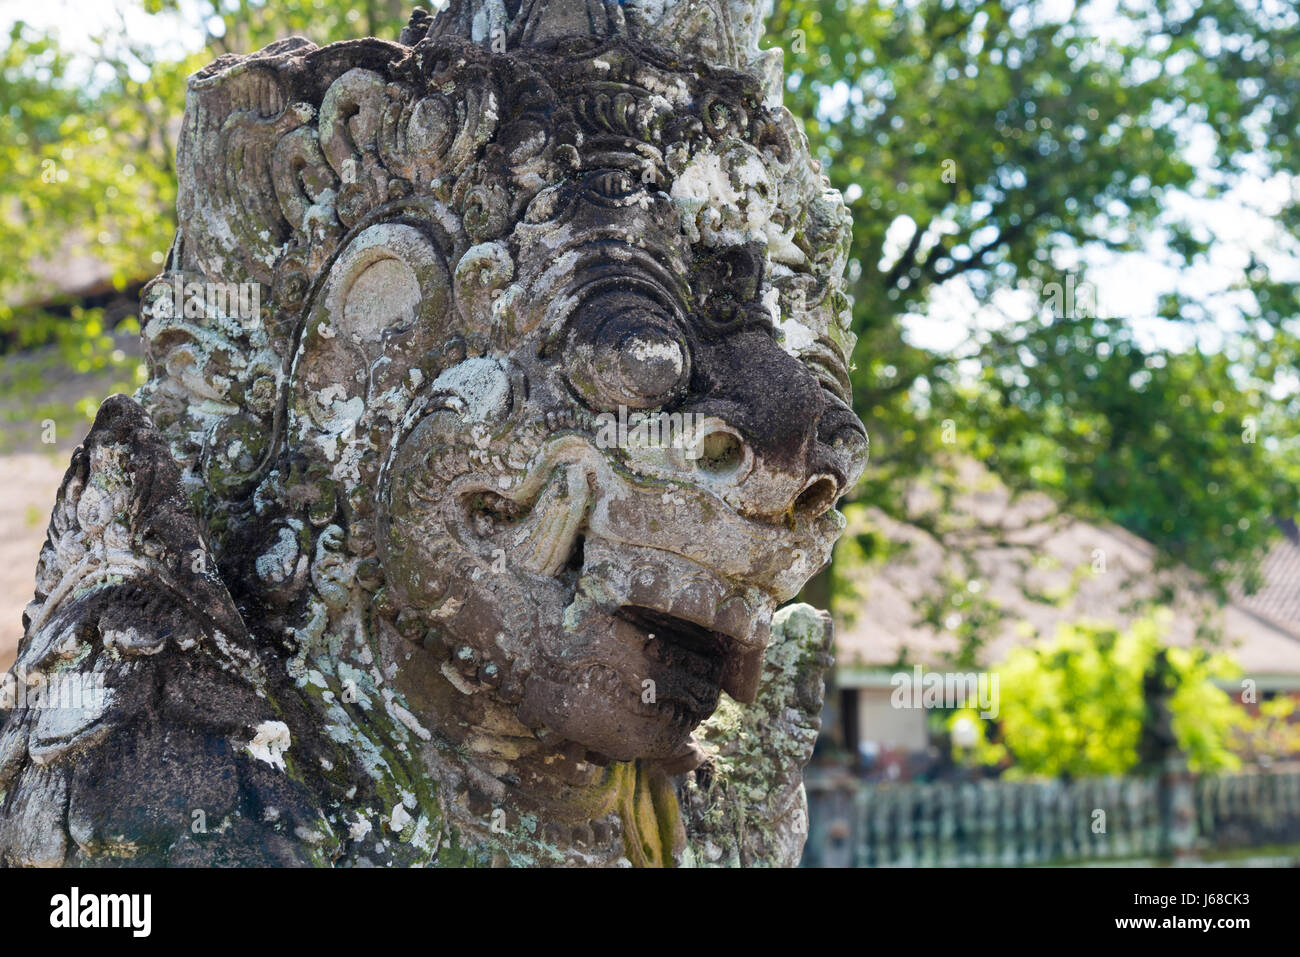 bali, indonesia - april 30, 2017 : traditional statue at pura